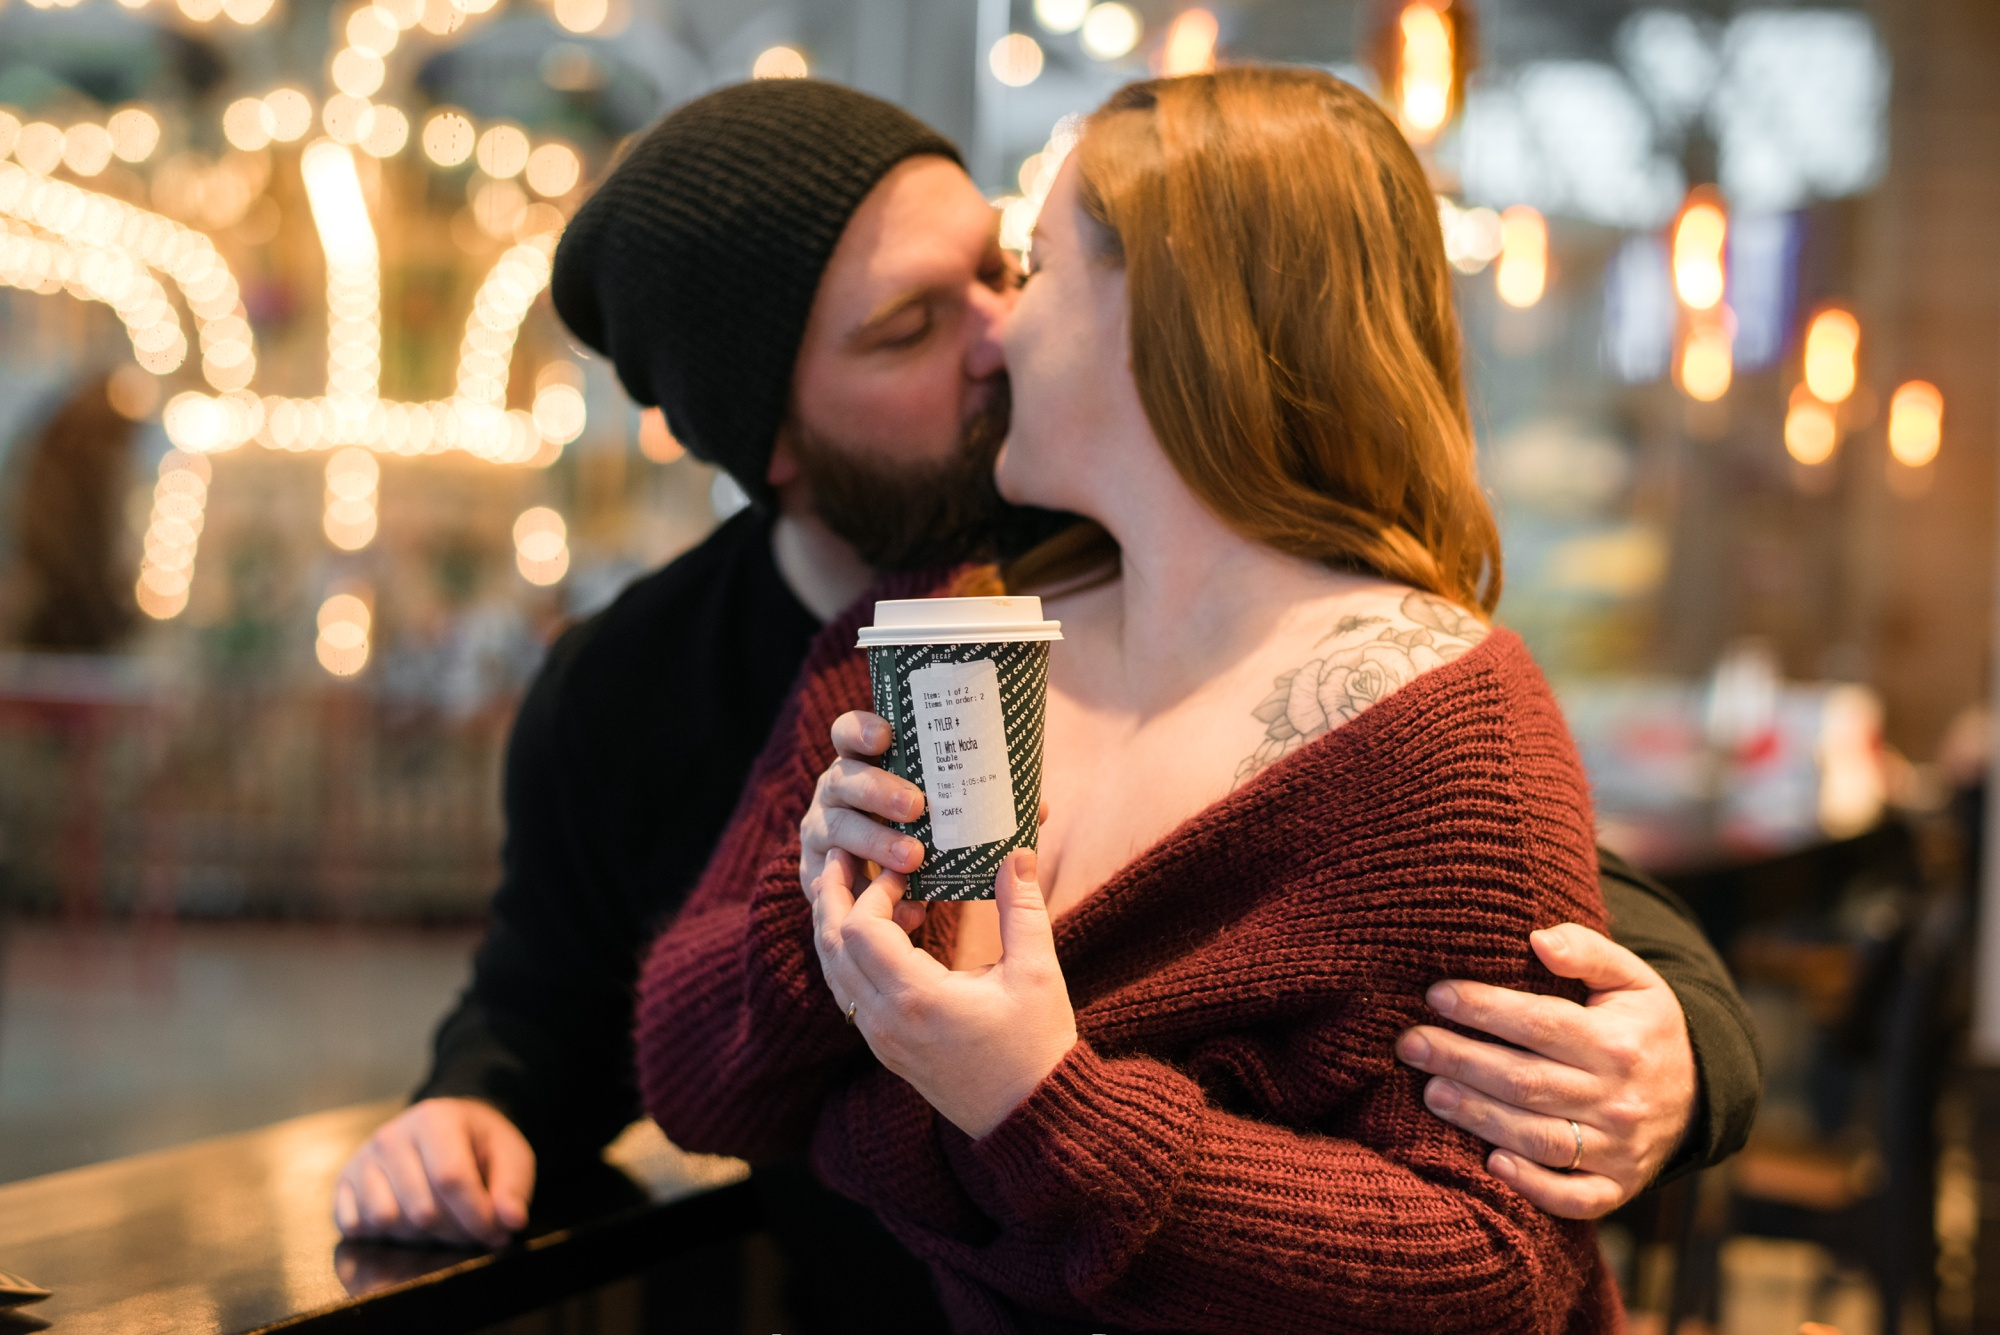 Bumble first date at Starbucks to married one year later